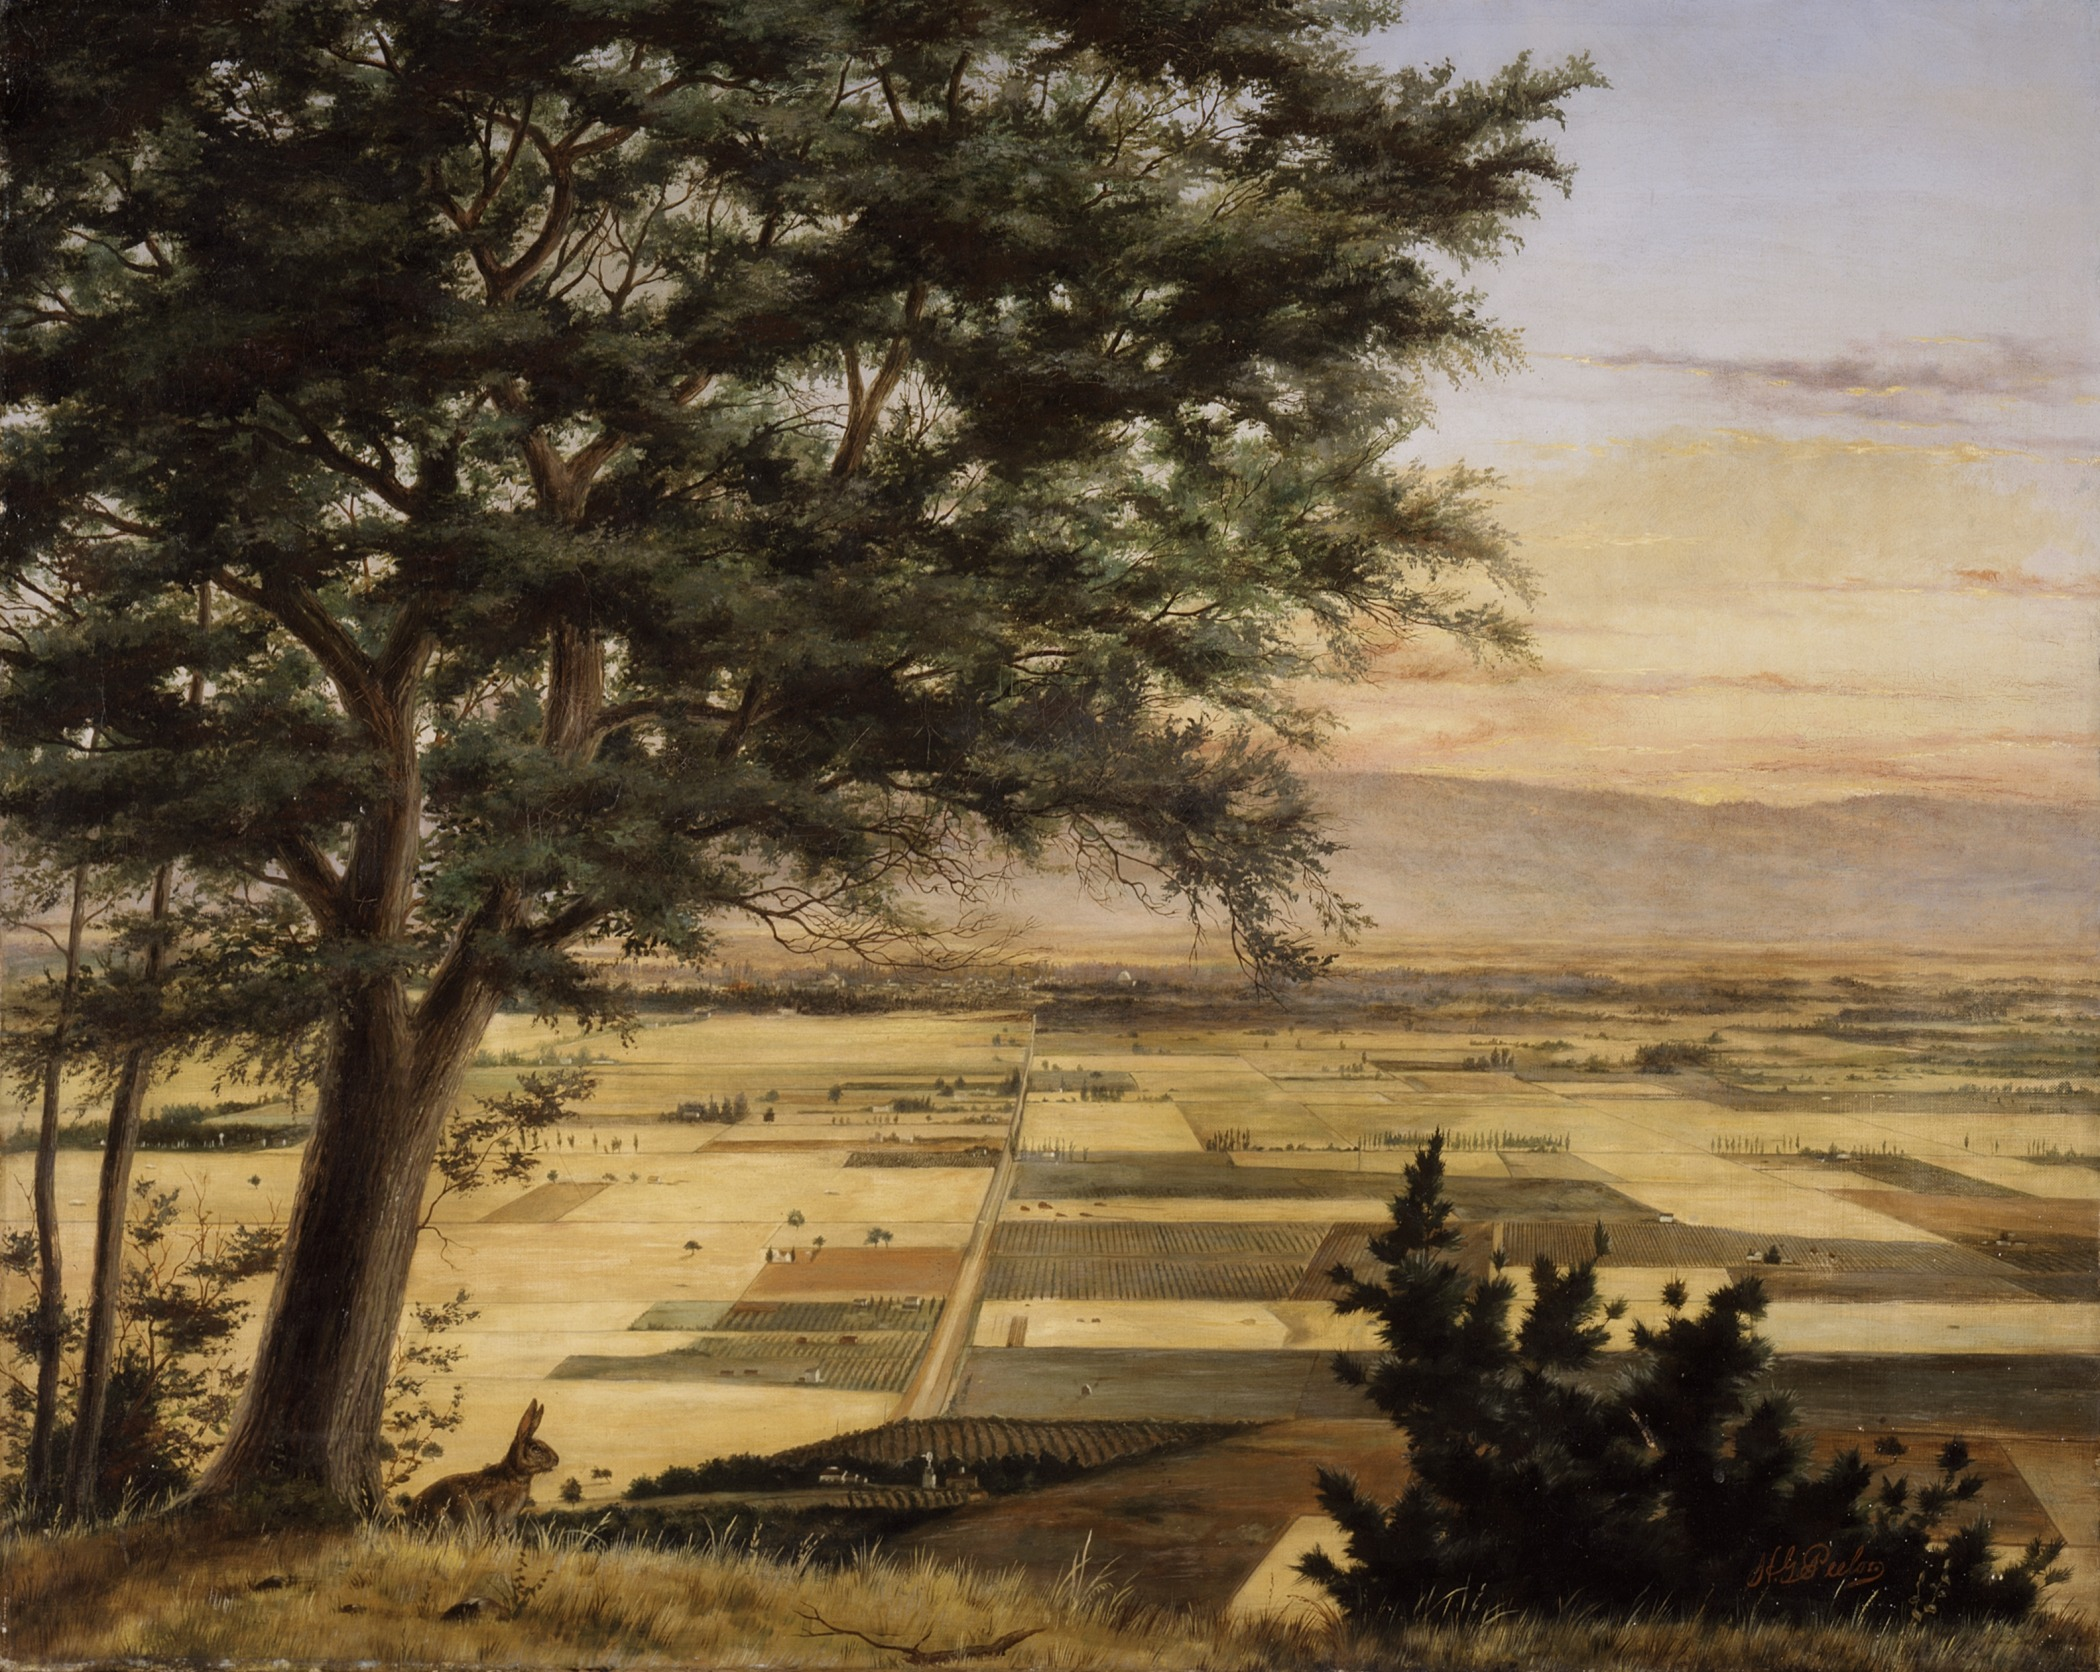 An oil painting of a tree overlooking a valley full of fields and farms